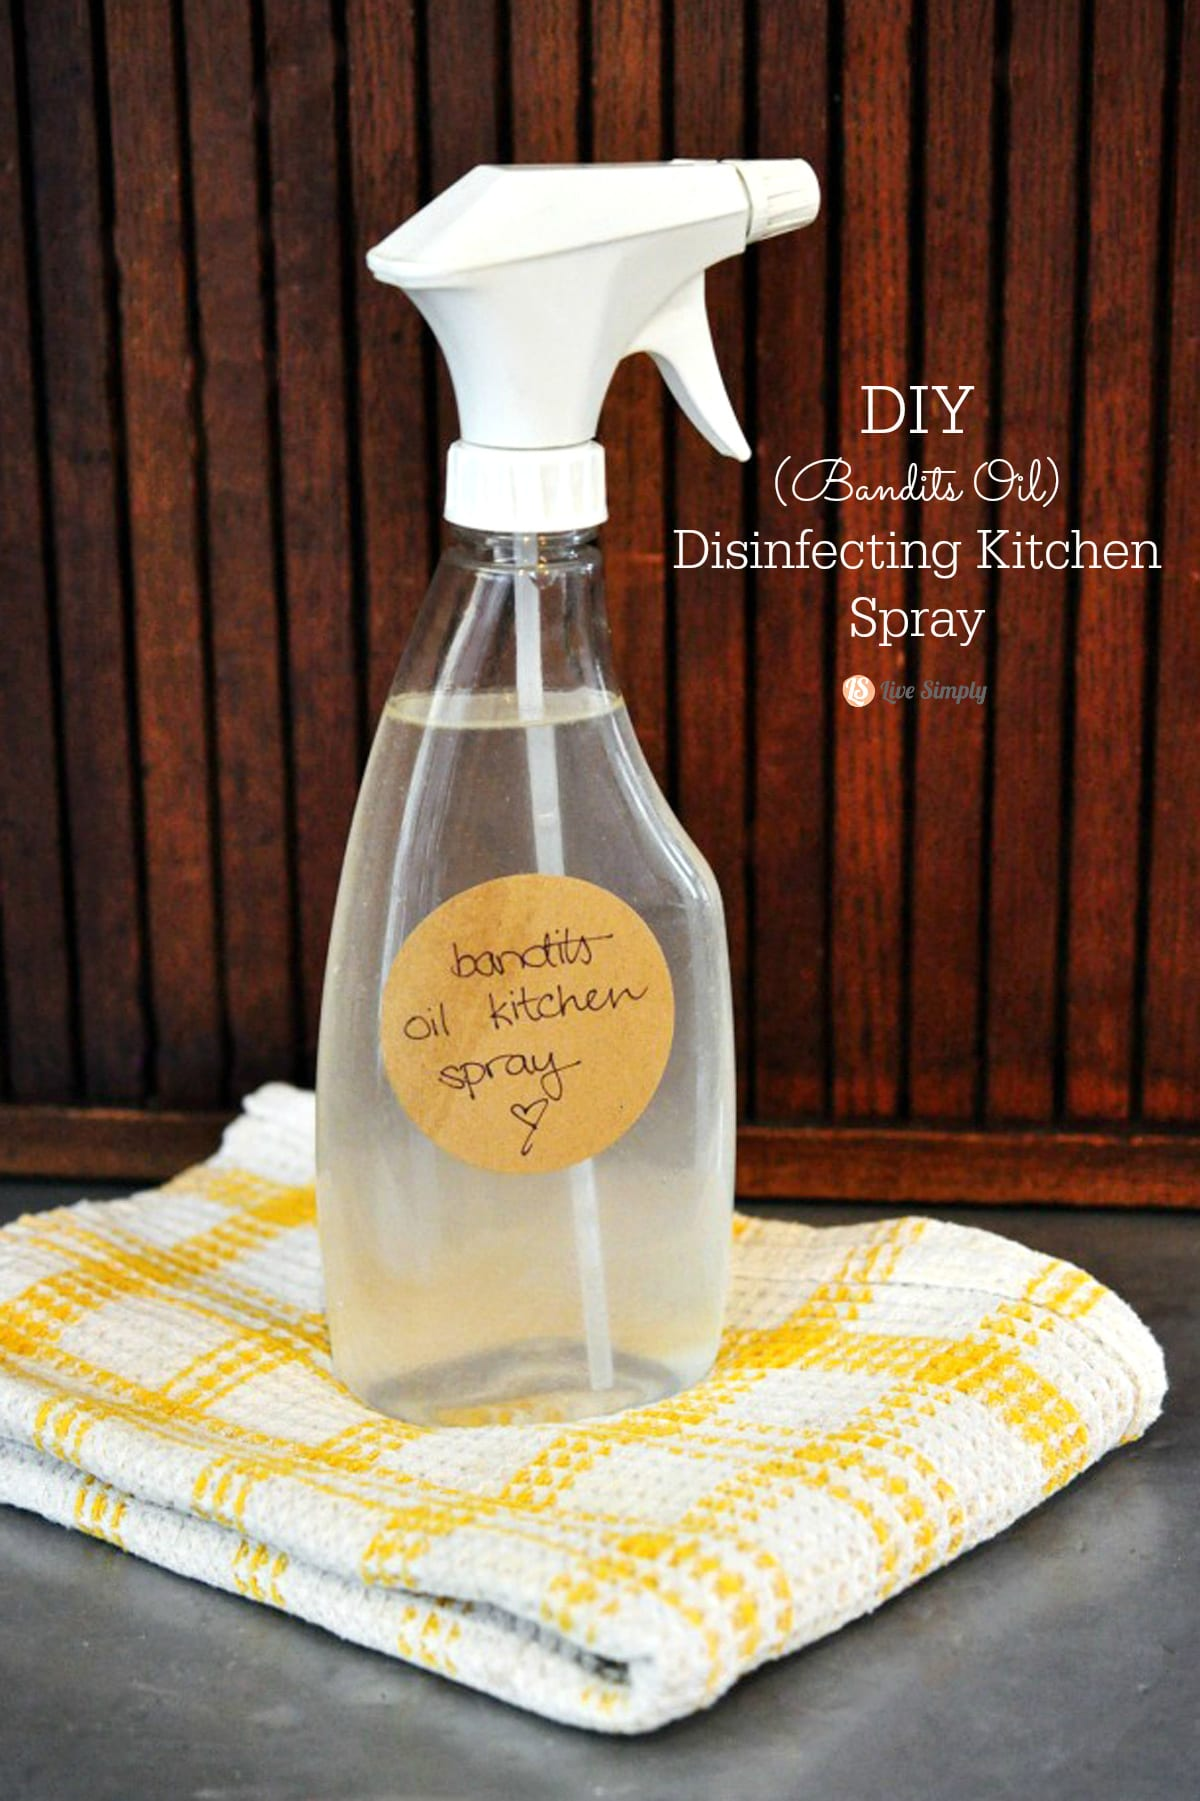 diy bandits oil disinfecting (kitchen) spray - live simply